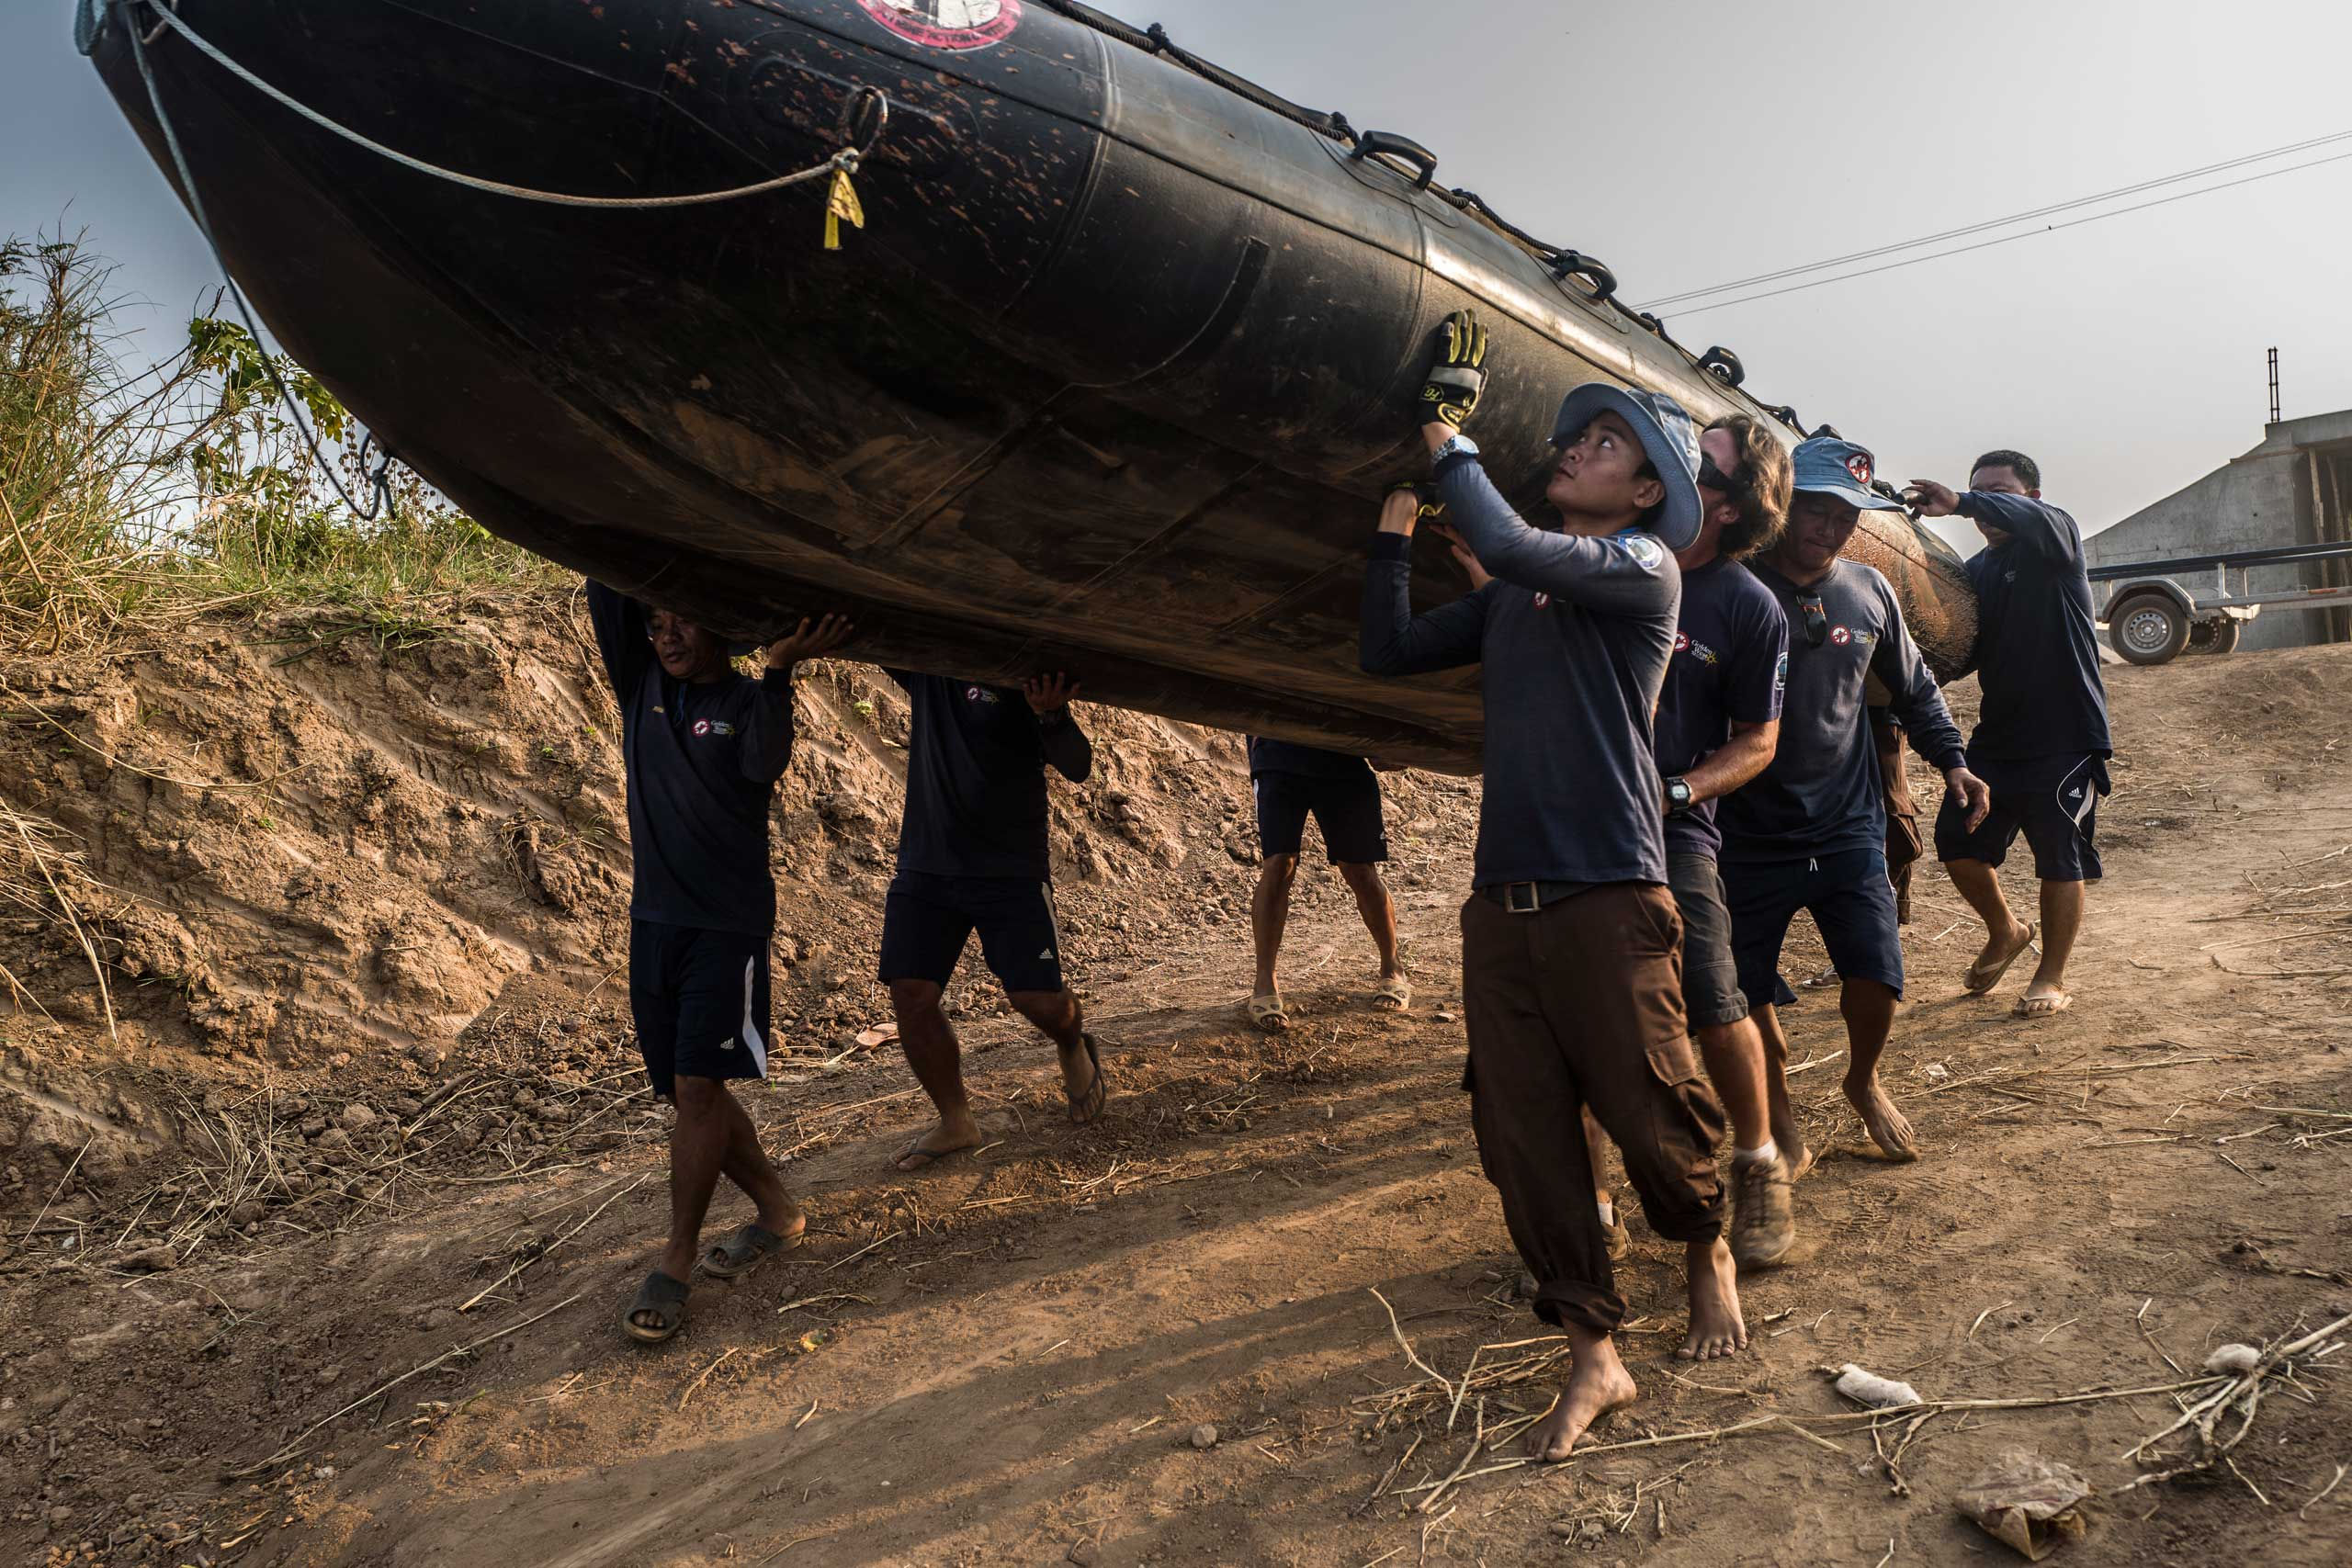 The diver team carries an inflatable boat down the banks of the Tonle Sap river in March 2016.